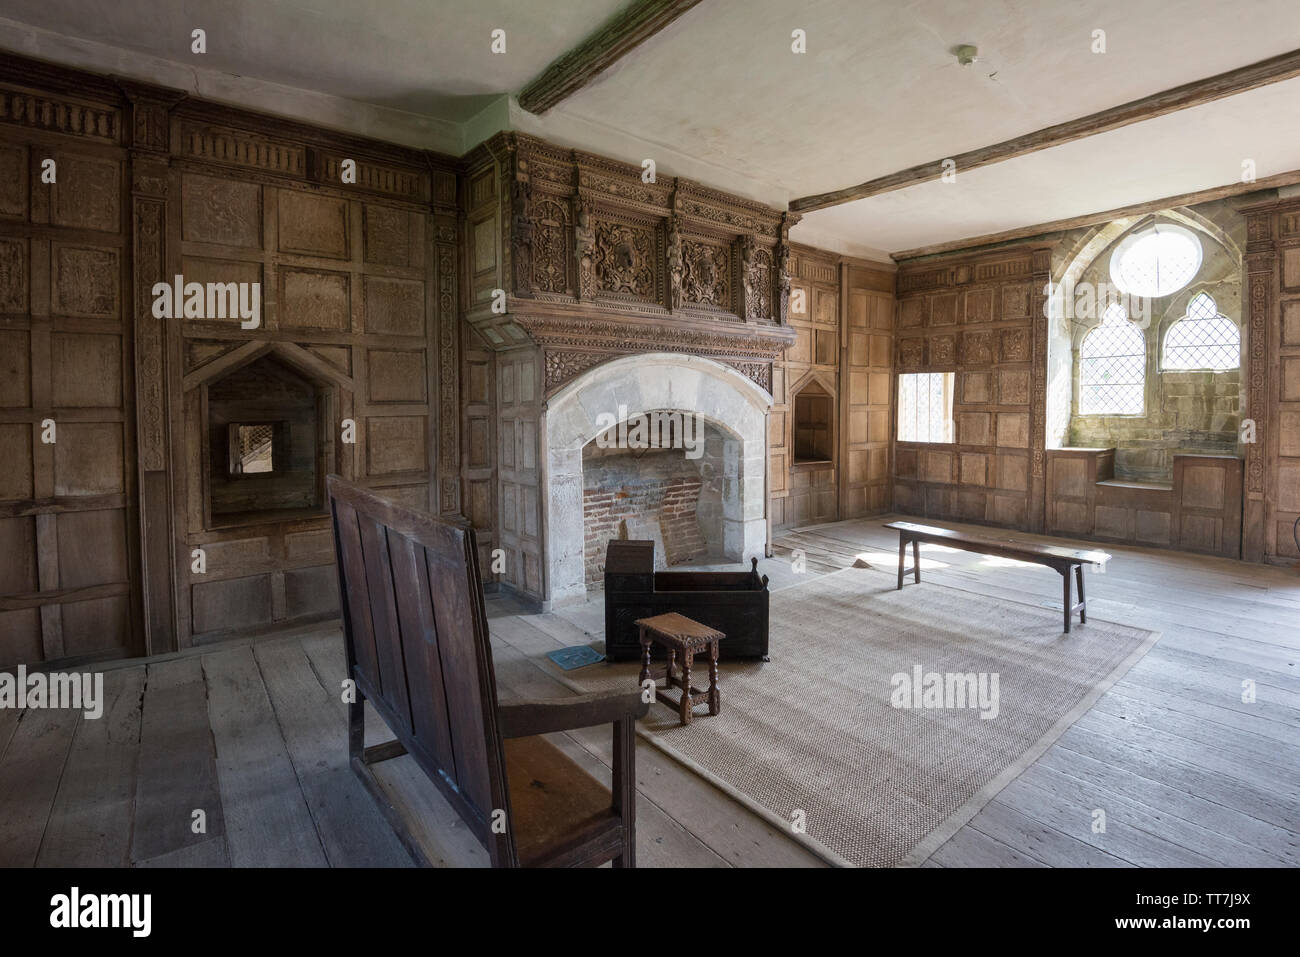 Panelled Room Stock Photos & Panelled Room Stock Images - Alamy